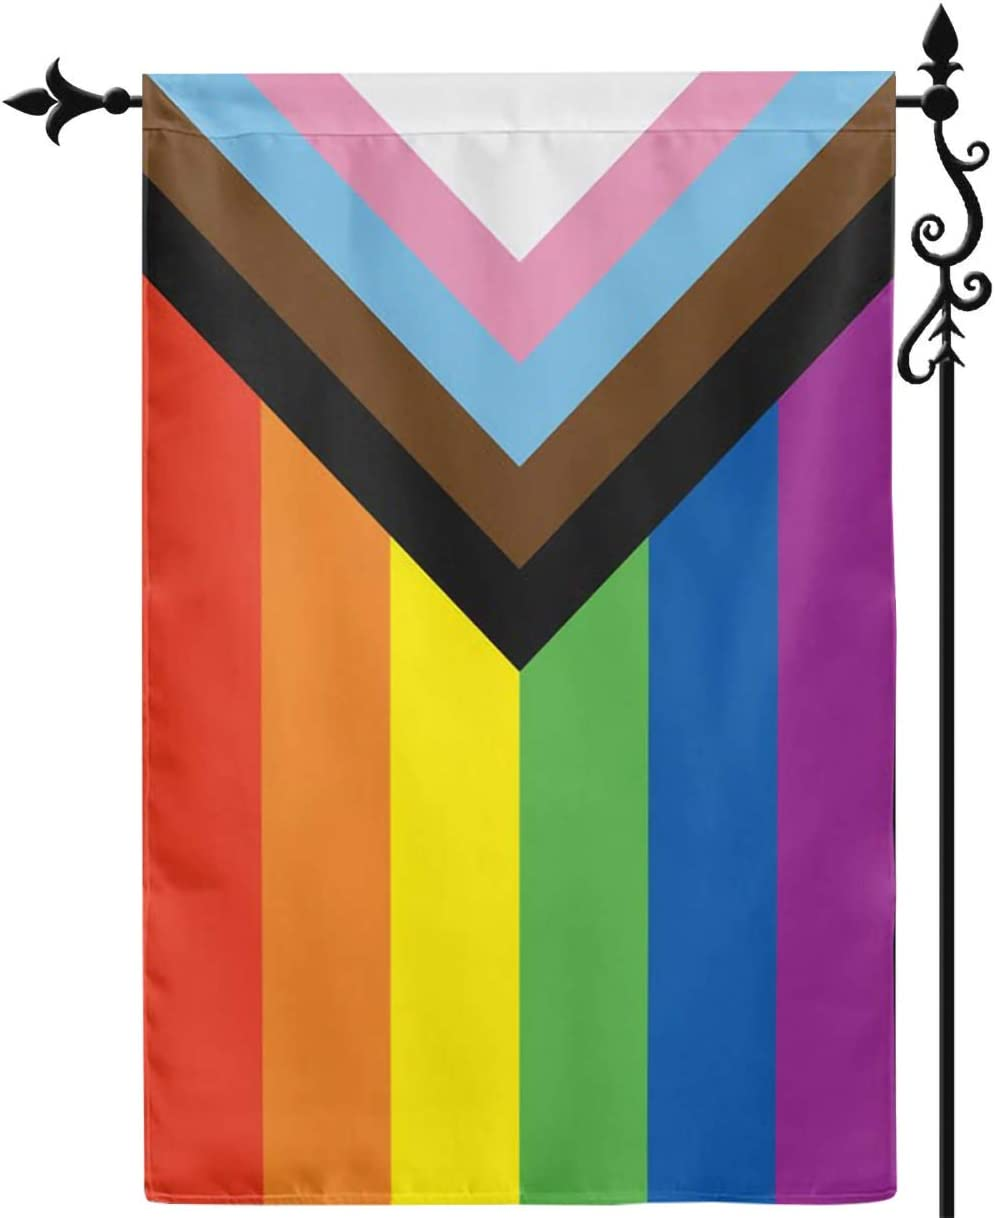 Jayus Inclusive Progress Gay Pride LGBTQ Yard Garden Flag- LGBT Philadelphia Rainbow Garden Flags Banners- Double Side with Bright Wide Stripes Lesbian Gay Pride for Room Yard Sign 12.5x18 Inch